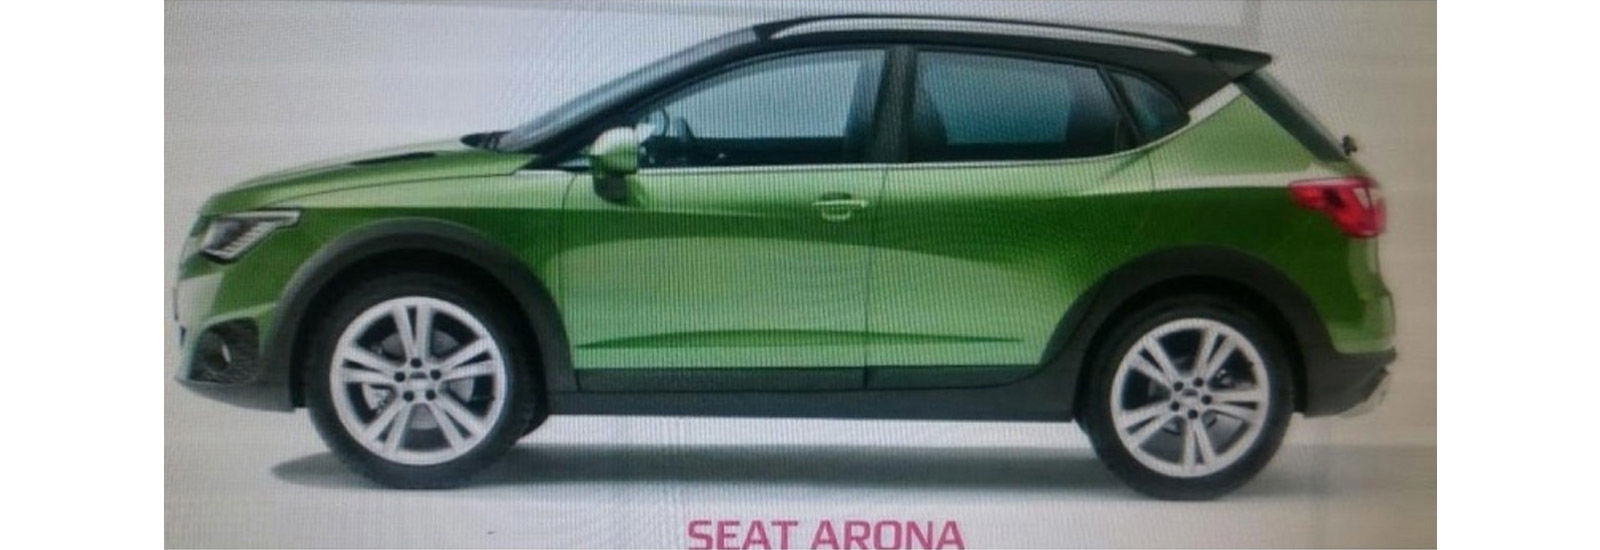 seat arona picture leaked forums. Black Bedroom Furniture Sets. Home Design Ideas